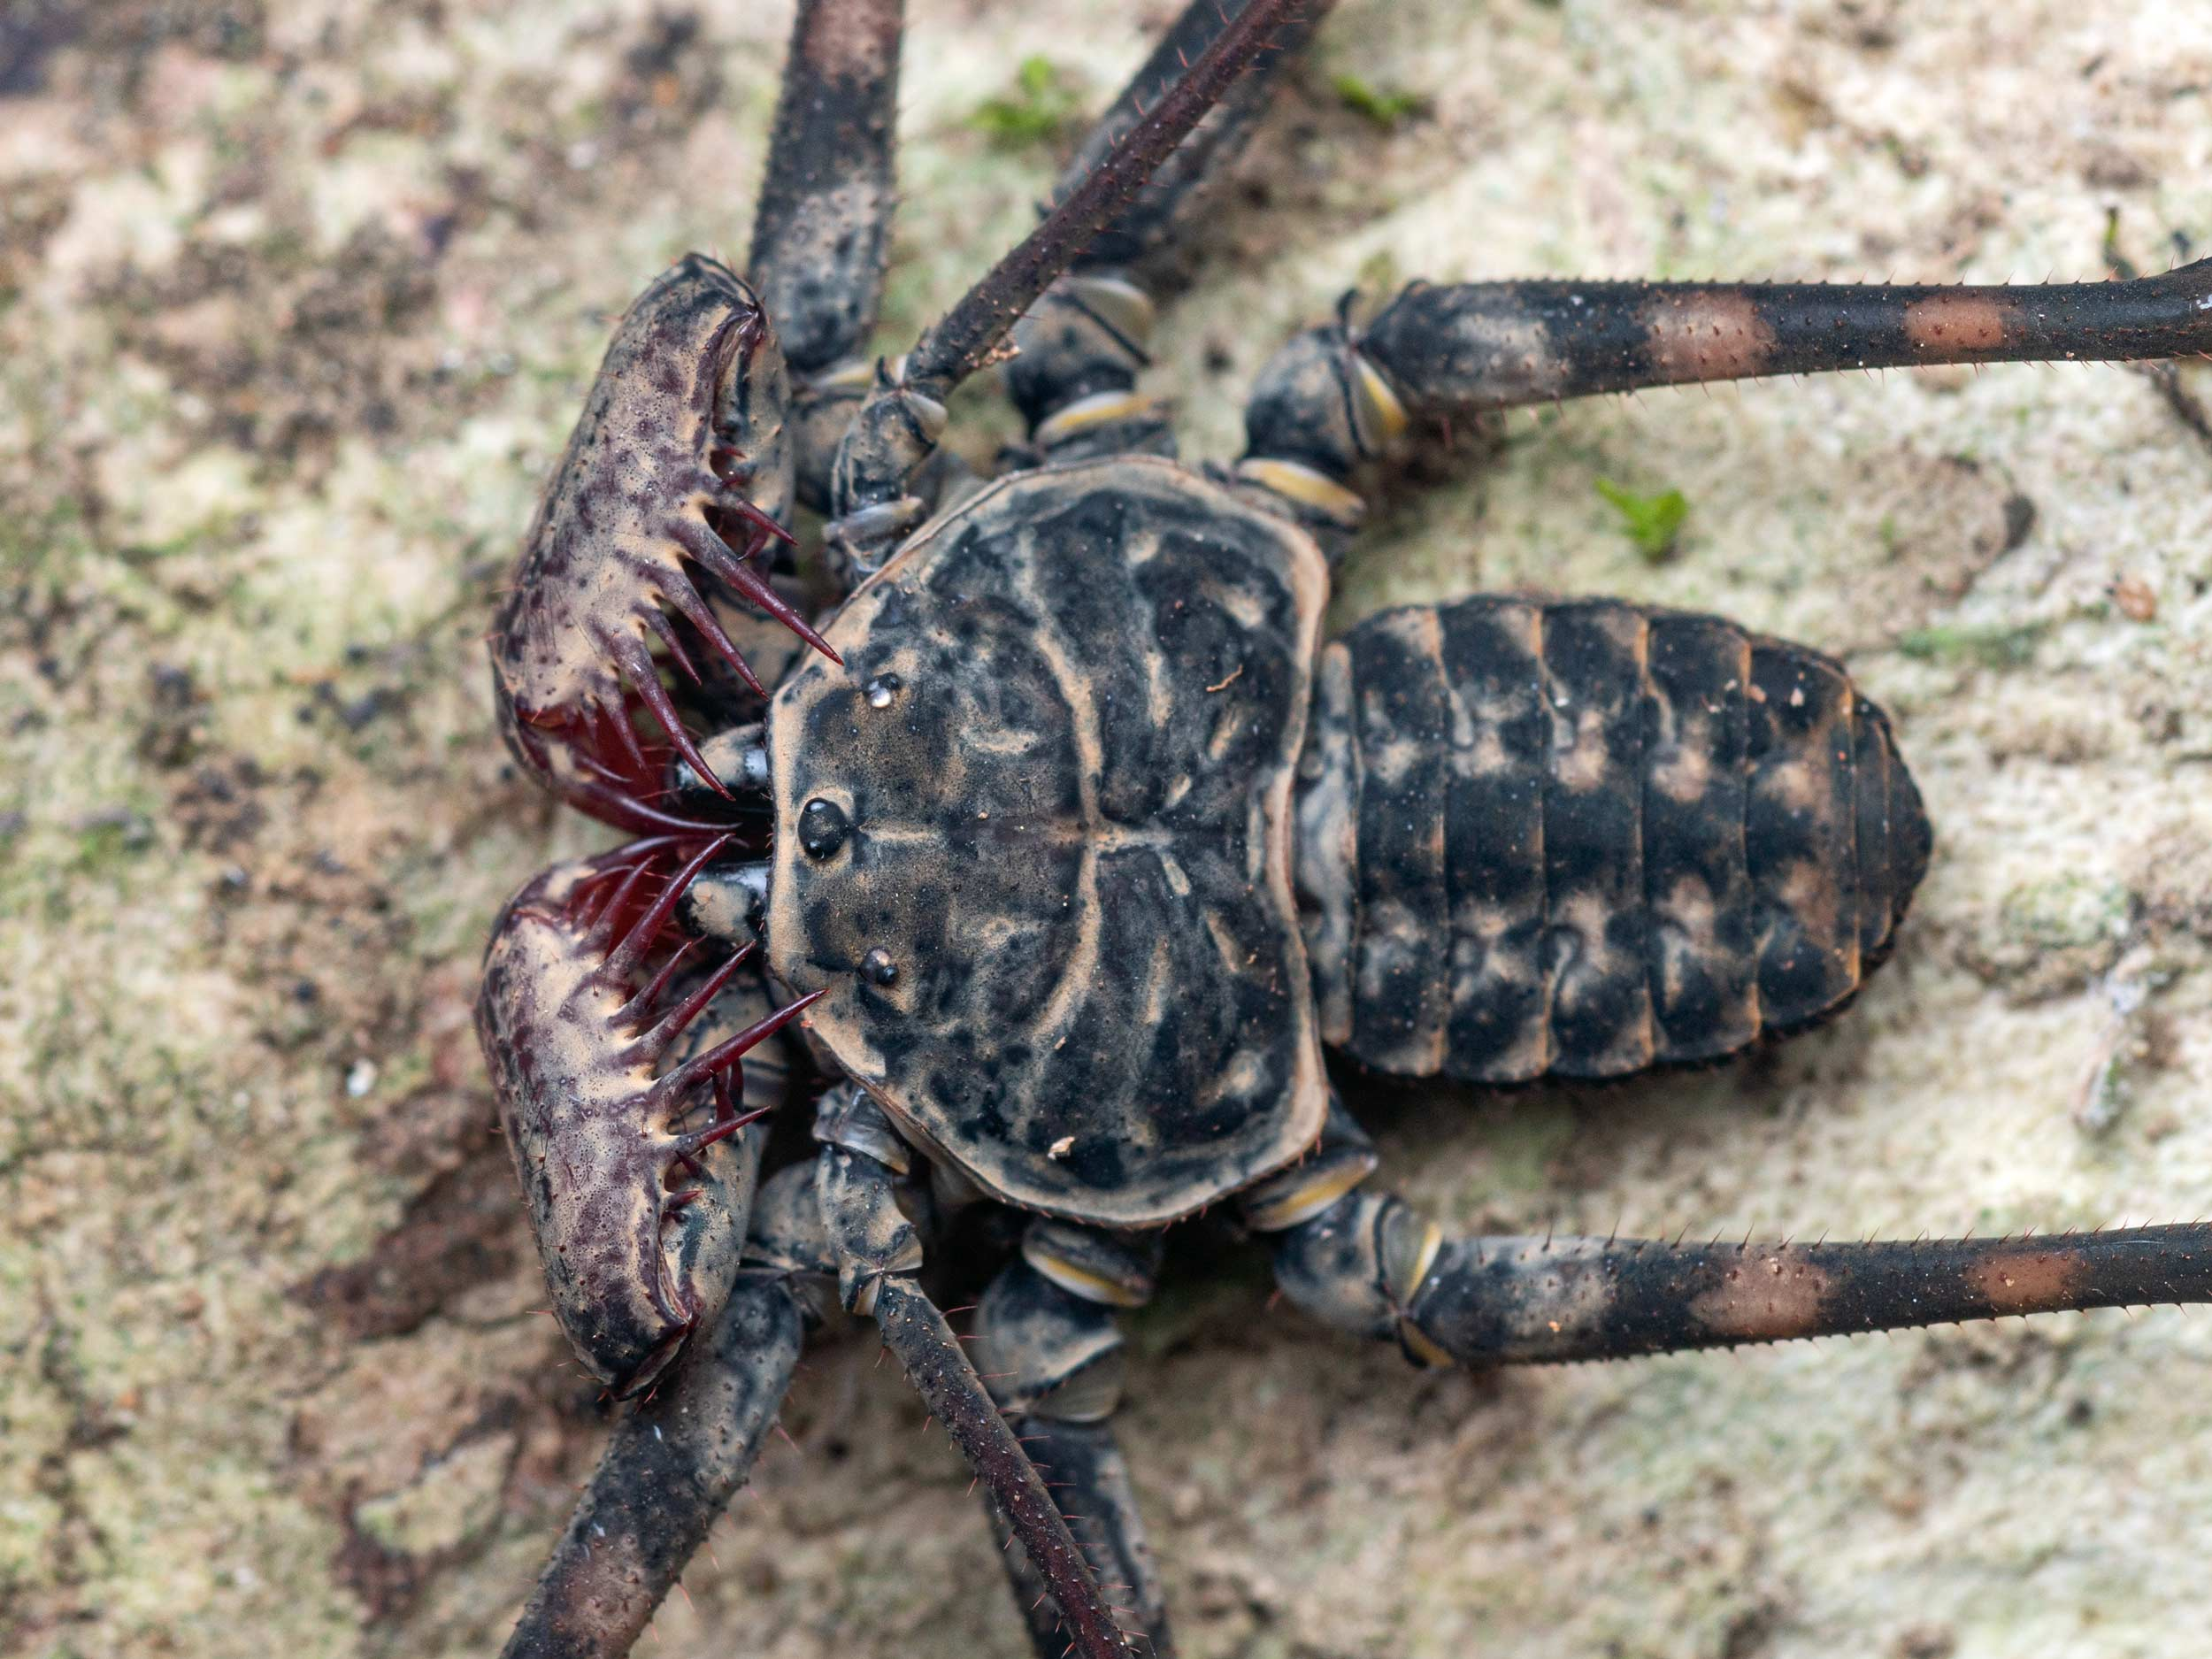 Whip spider photographed on the Osa peninsula in Costa Rica